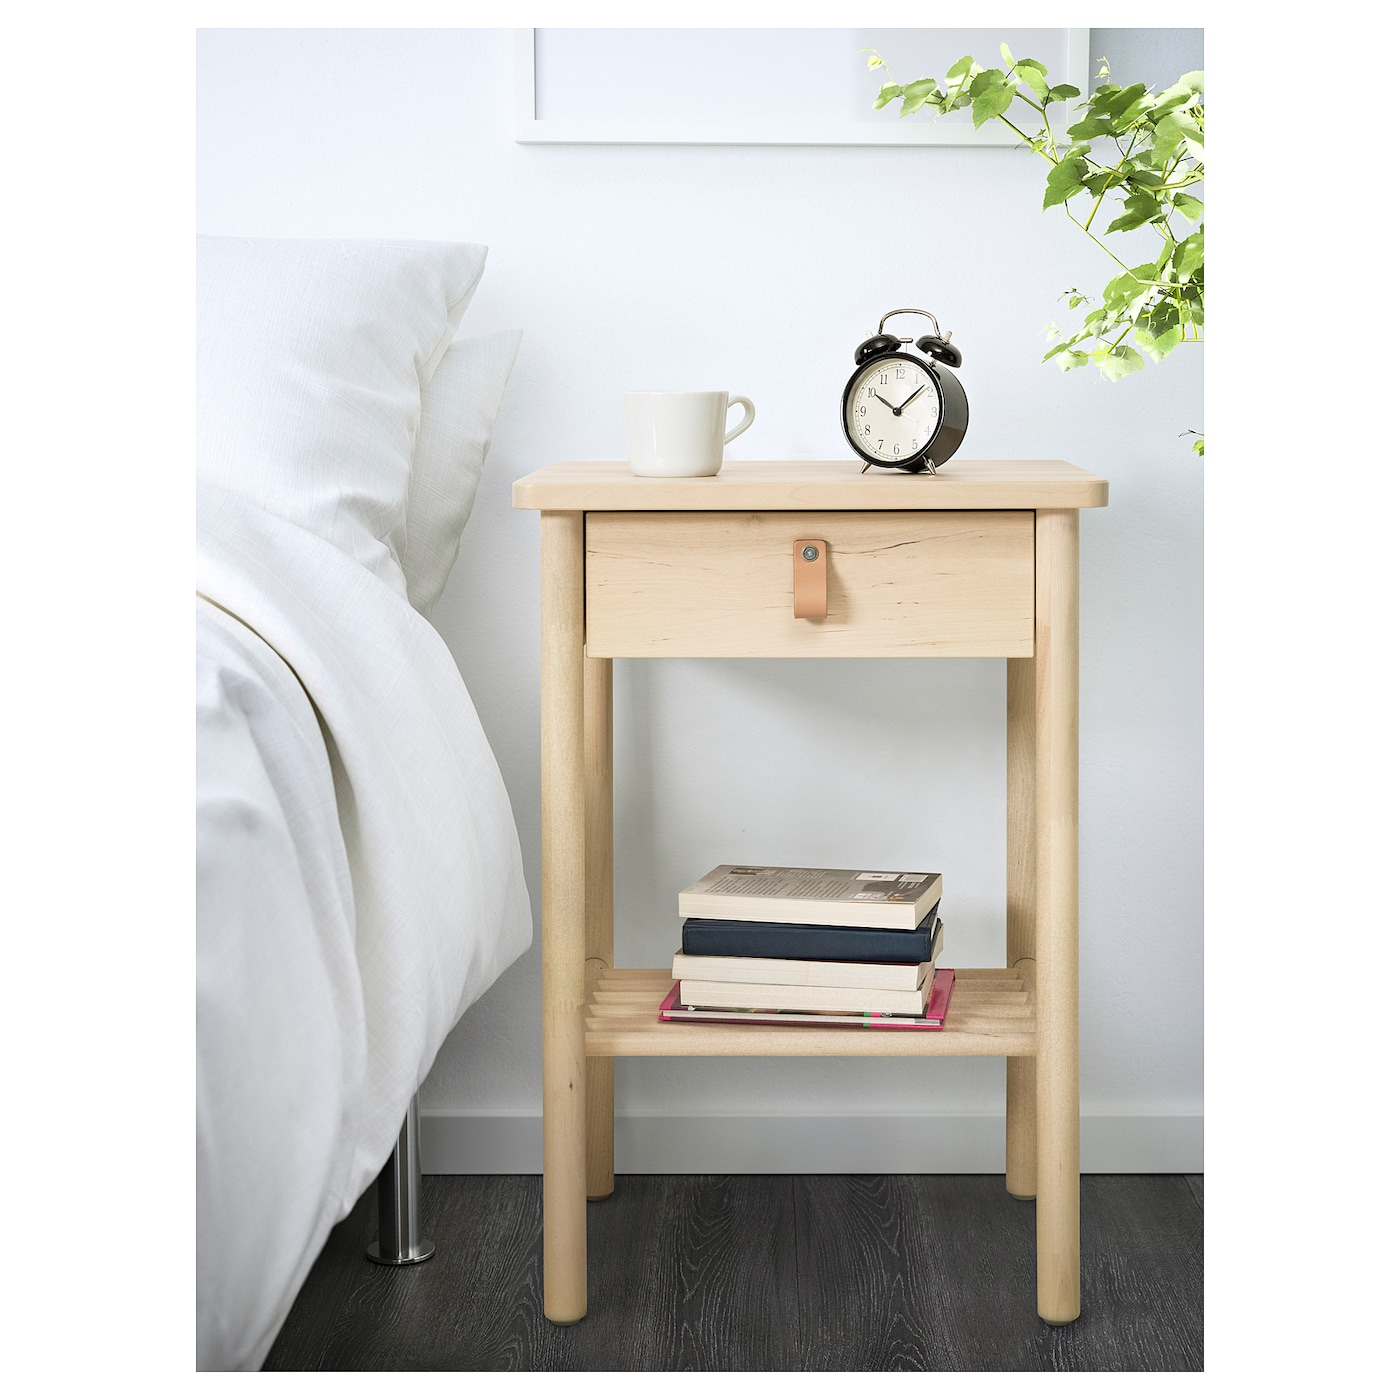 "BJ–RKSN""S Bedside table Birch 48x38 cm IKEA"